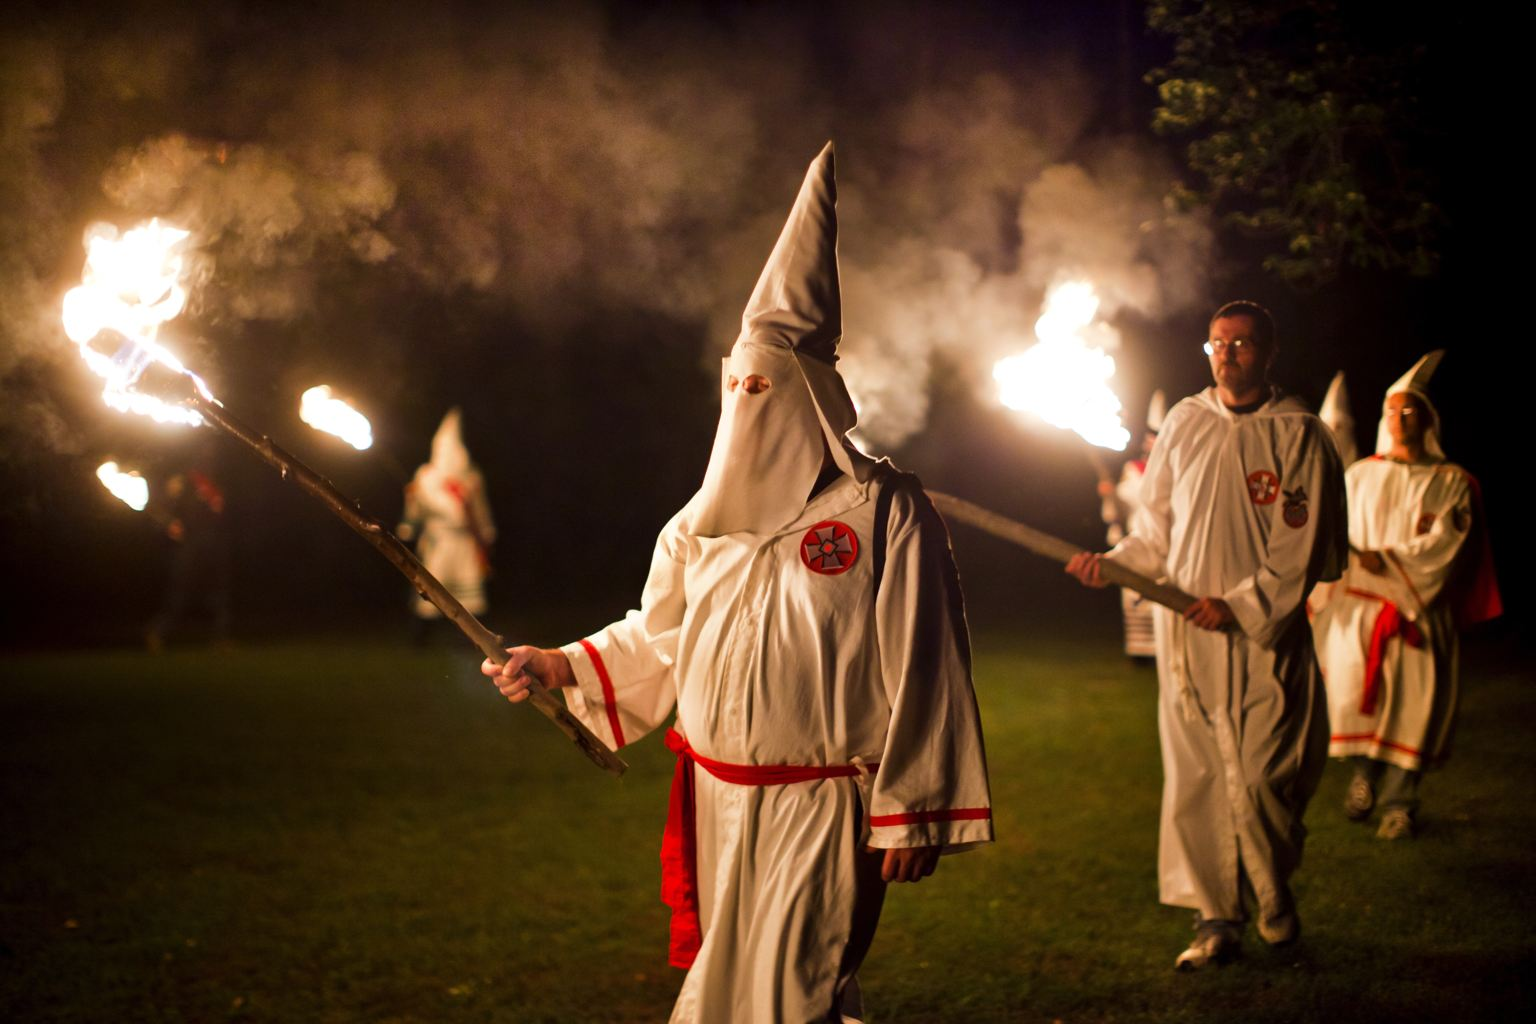 Members of the Knights of the Southern Cross of the Ku Klux Klan (KSCKKK) & U.S.Education And The New Jim Crow » KKK Rides Again azcodes.com